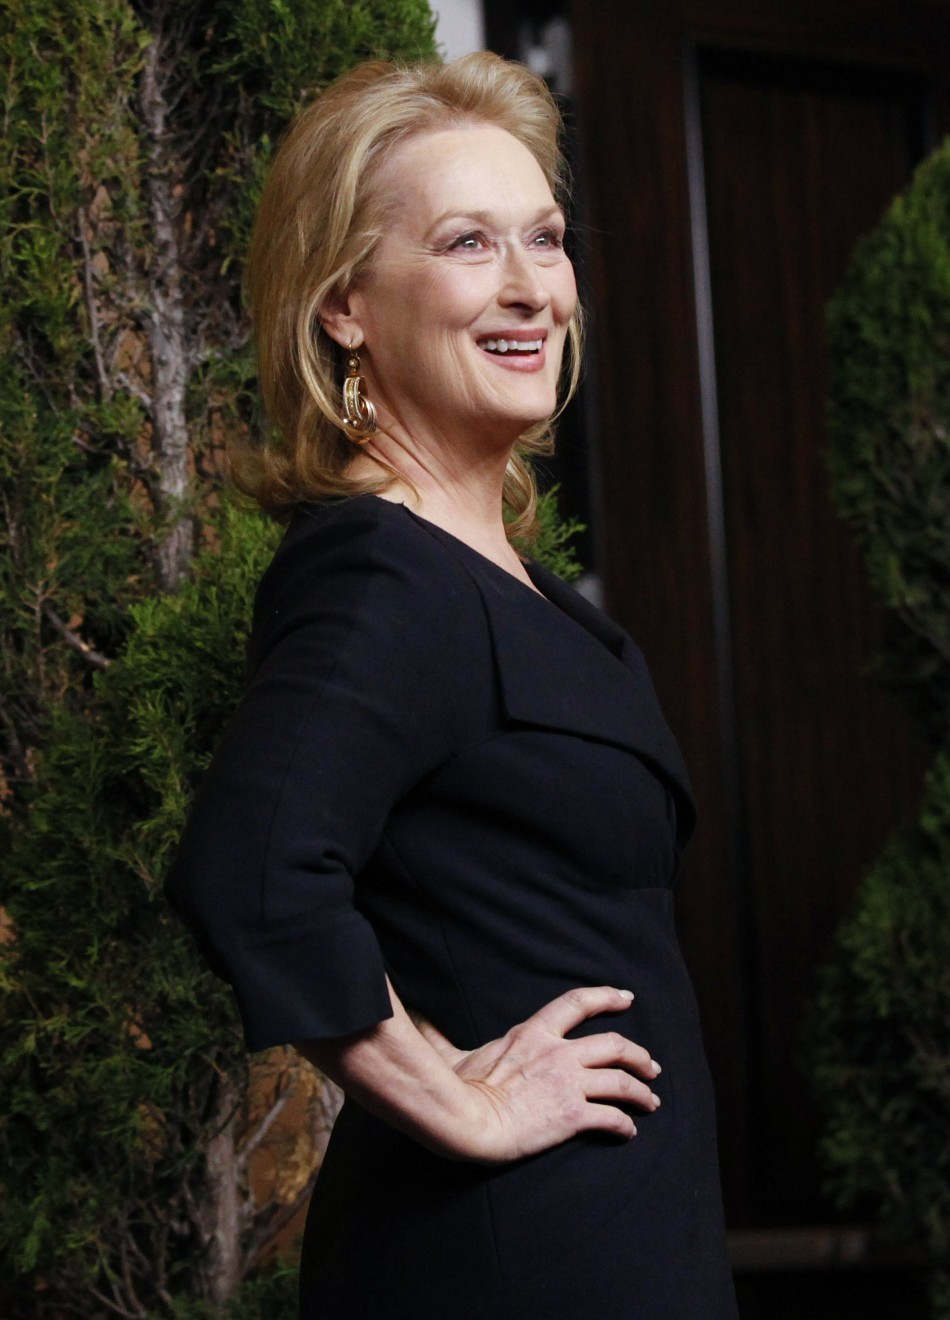 Meryl Streep at the Oscars Luncheon